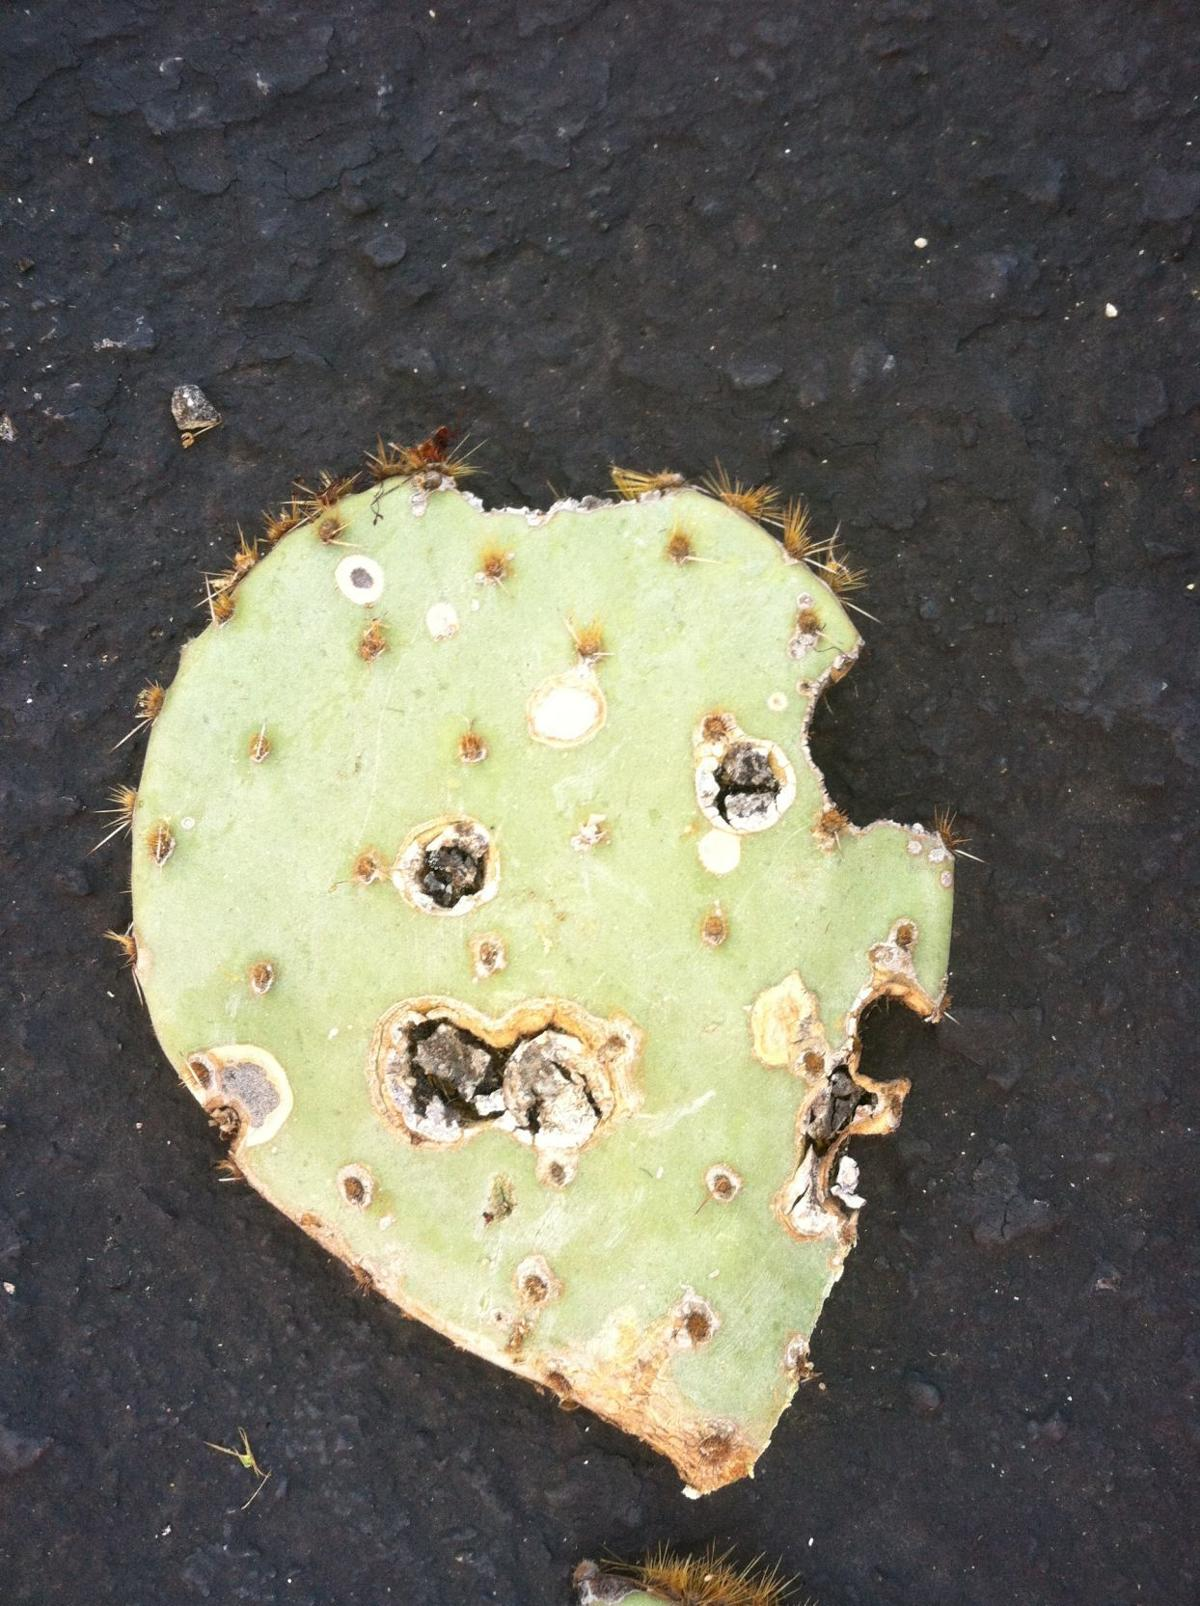 Christmas Cactus Diseases.17 Pointers On Keeping Your Cactus Looking Sharp Tucson Com